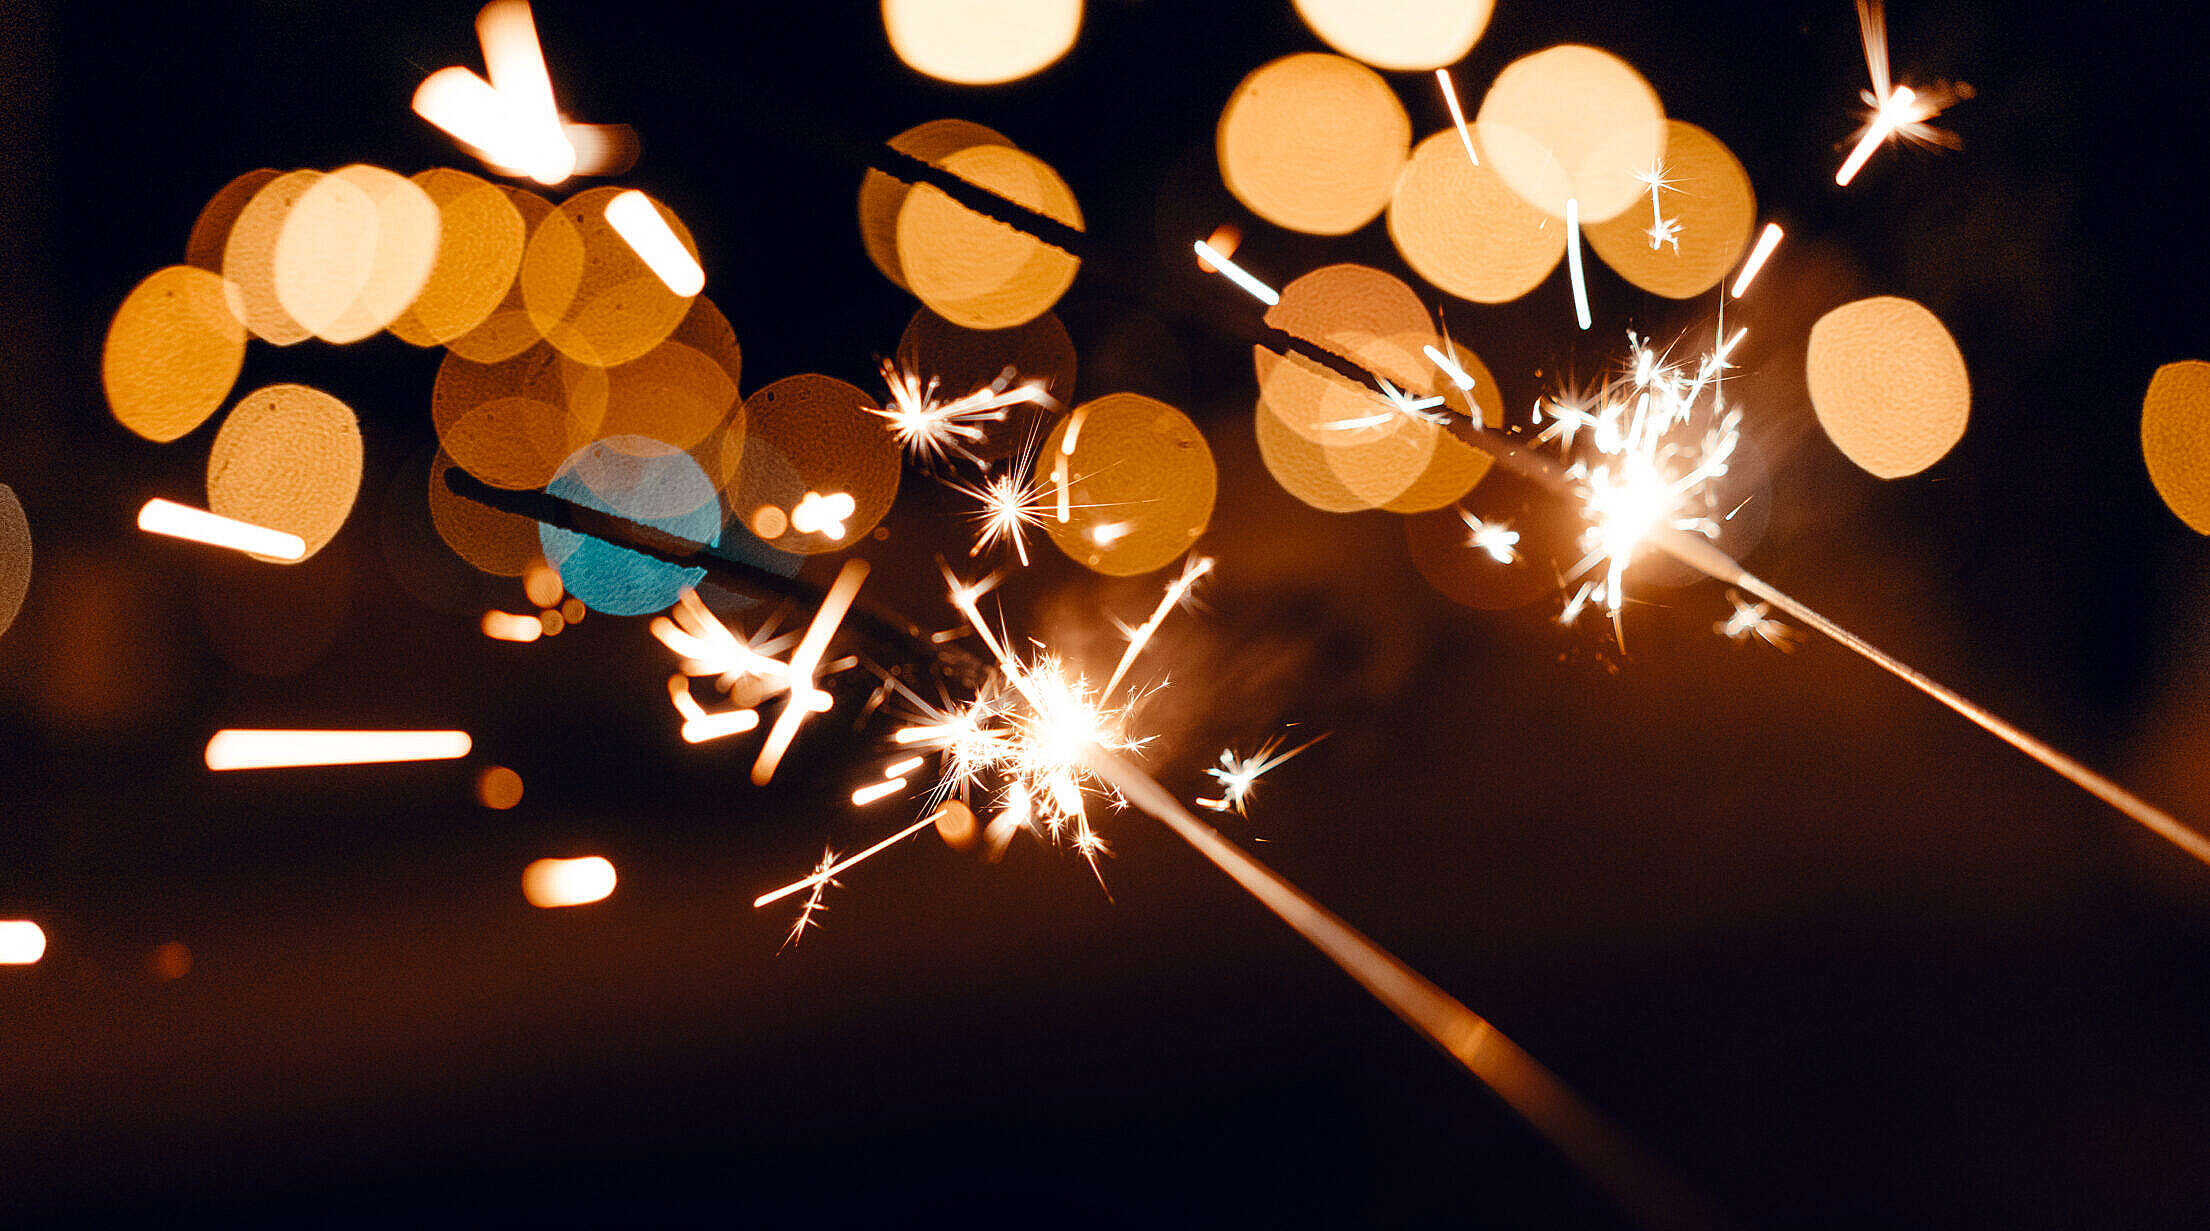 Sparklers with Beautiful Abstract Bokeh Free Stock Photo